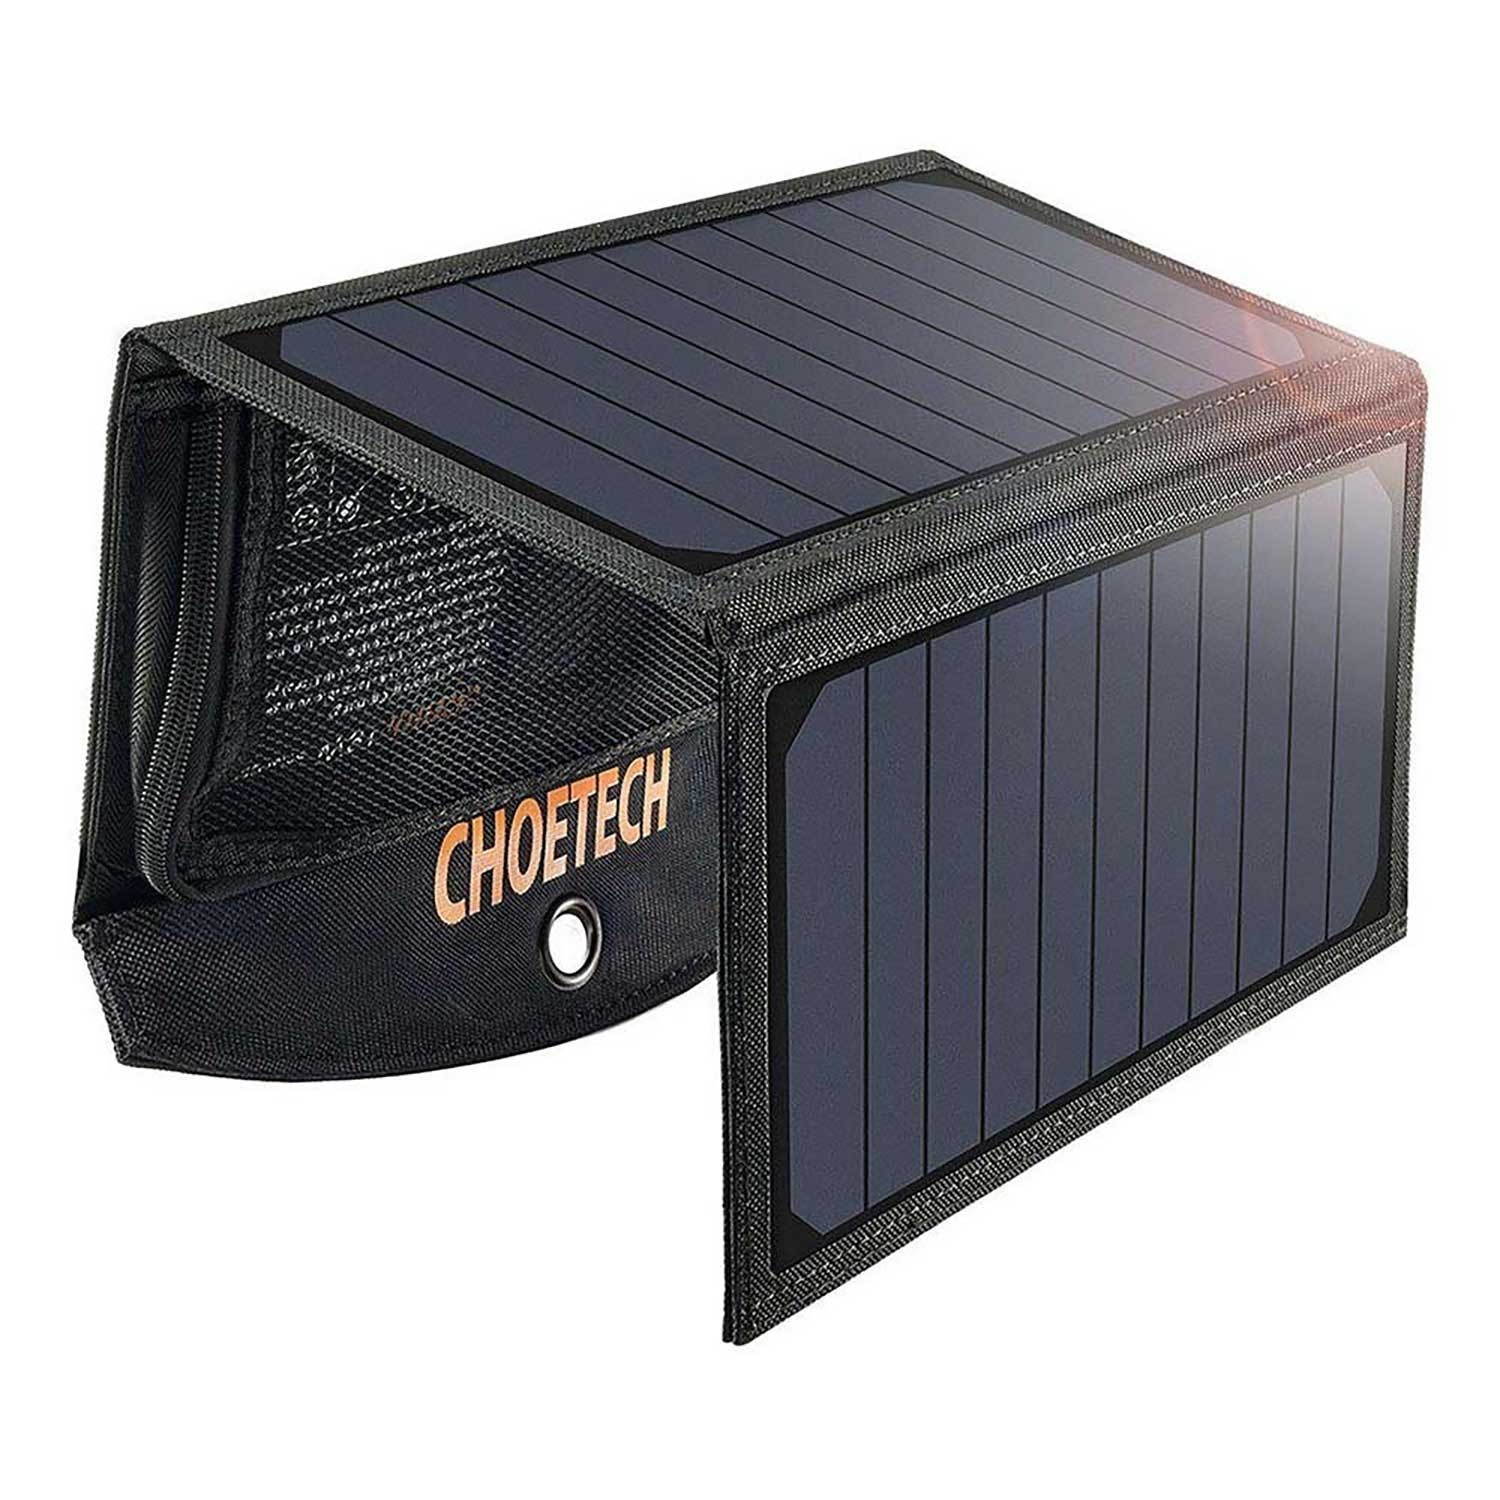 Solar Charger CHOETECH 19W Universal